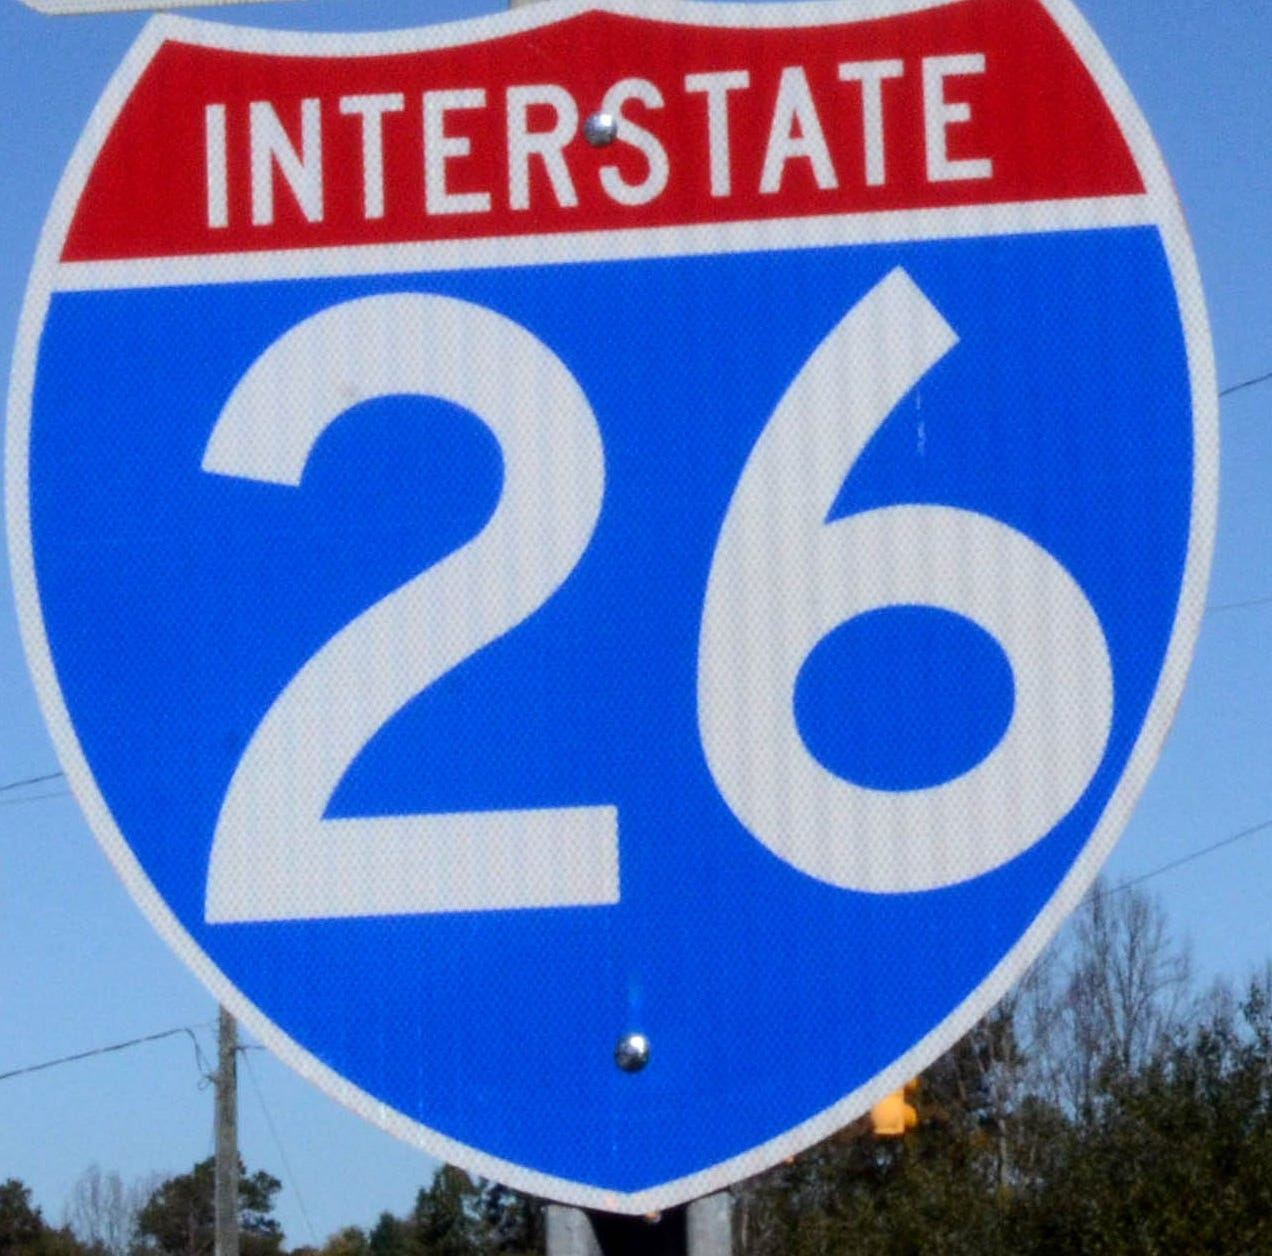 New truck restrictions coming to I-26